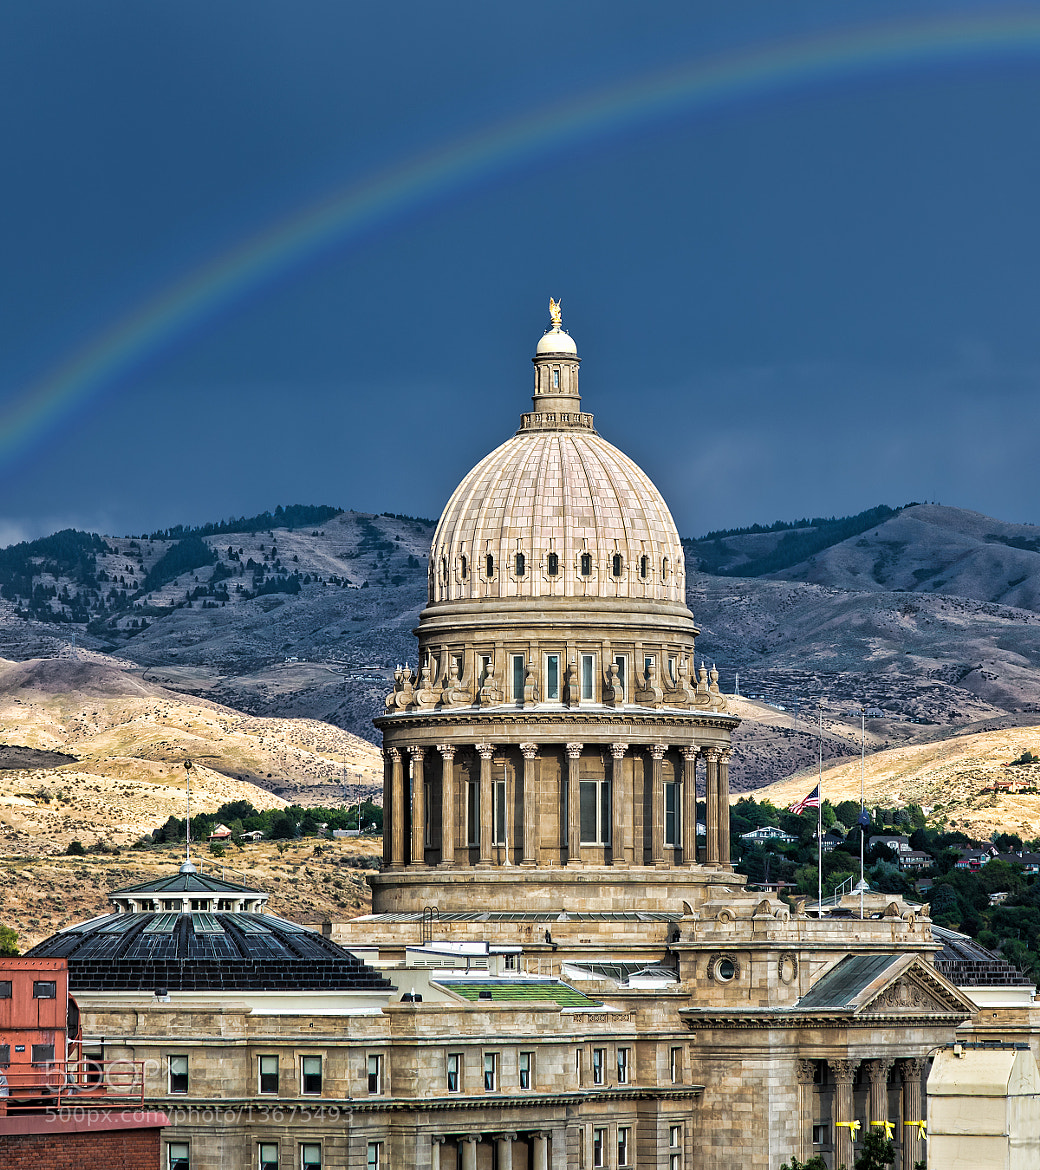 Photograph Idaho Capital Building by Greg Ness on 500px